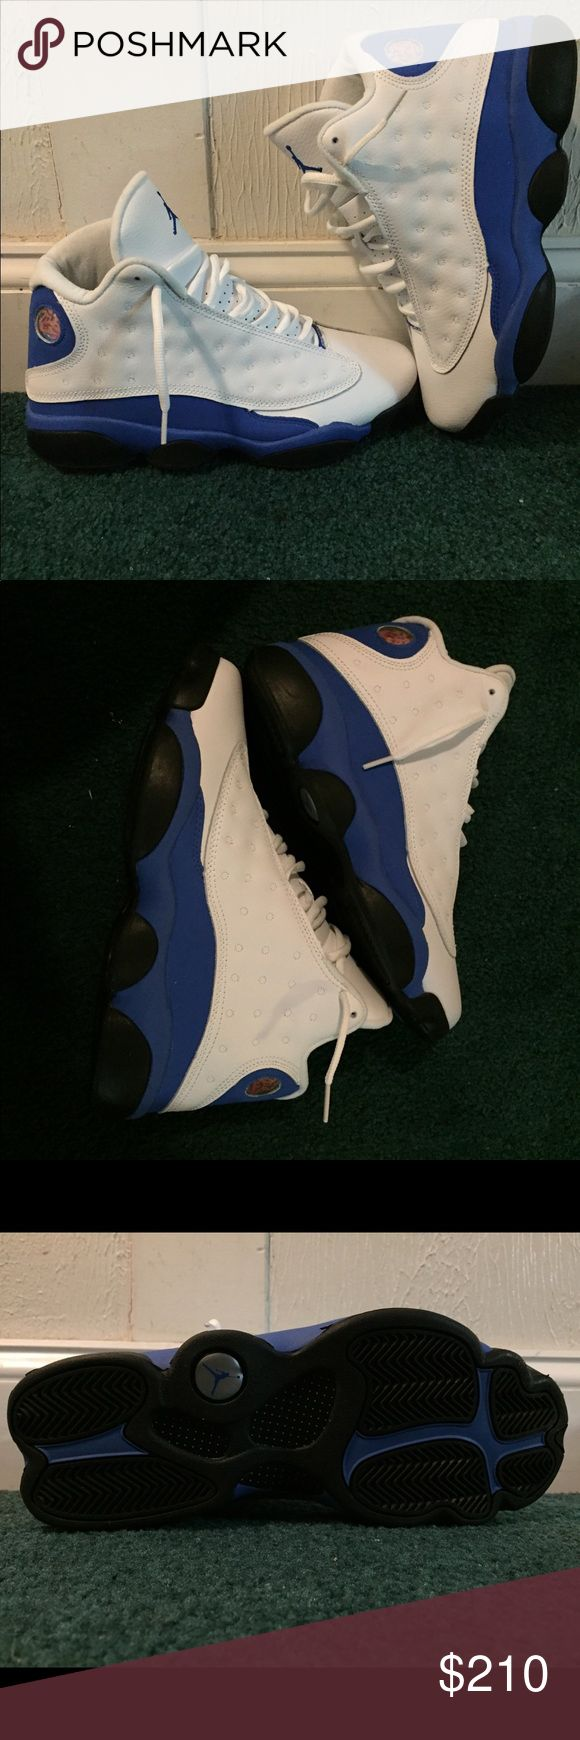 "Jordan 14 ""Hyper Royal"" (Unreleased) Air Jordan 13 Color: White/Hyper Royal Style Code: 414571-117 Release Date: March 3, 2018 Jordan Shoes Athletic Shoes"